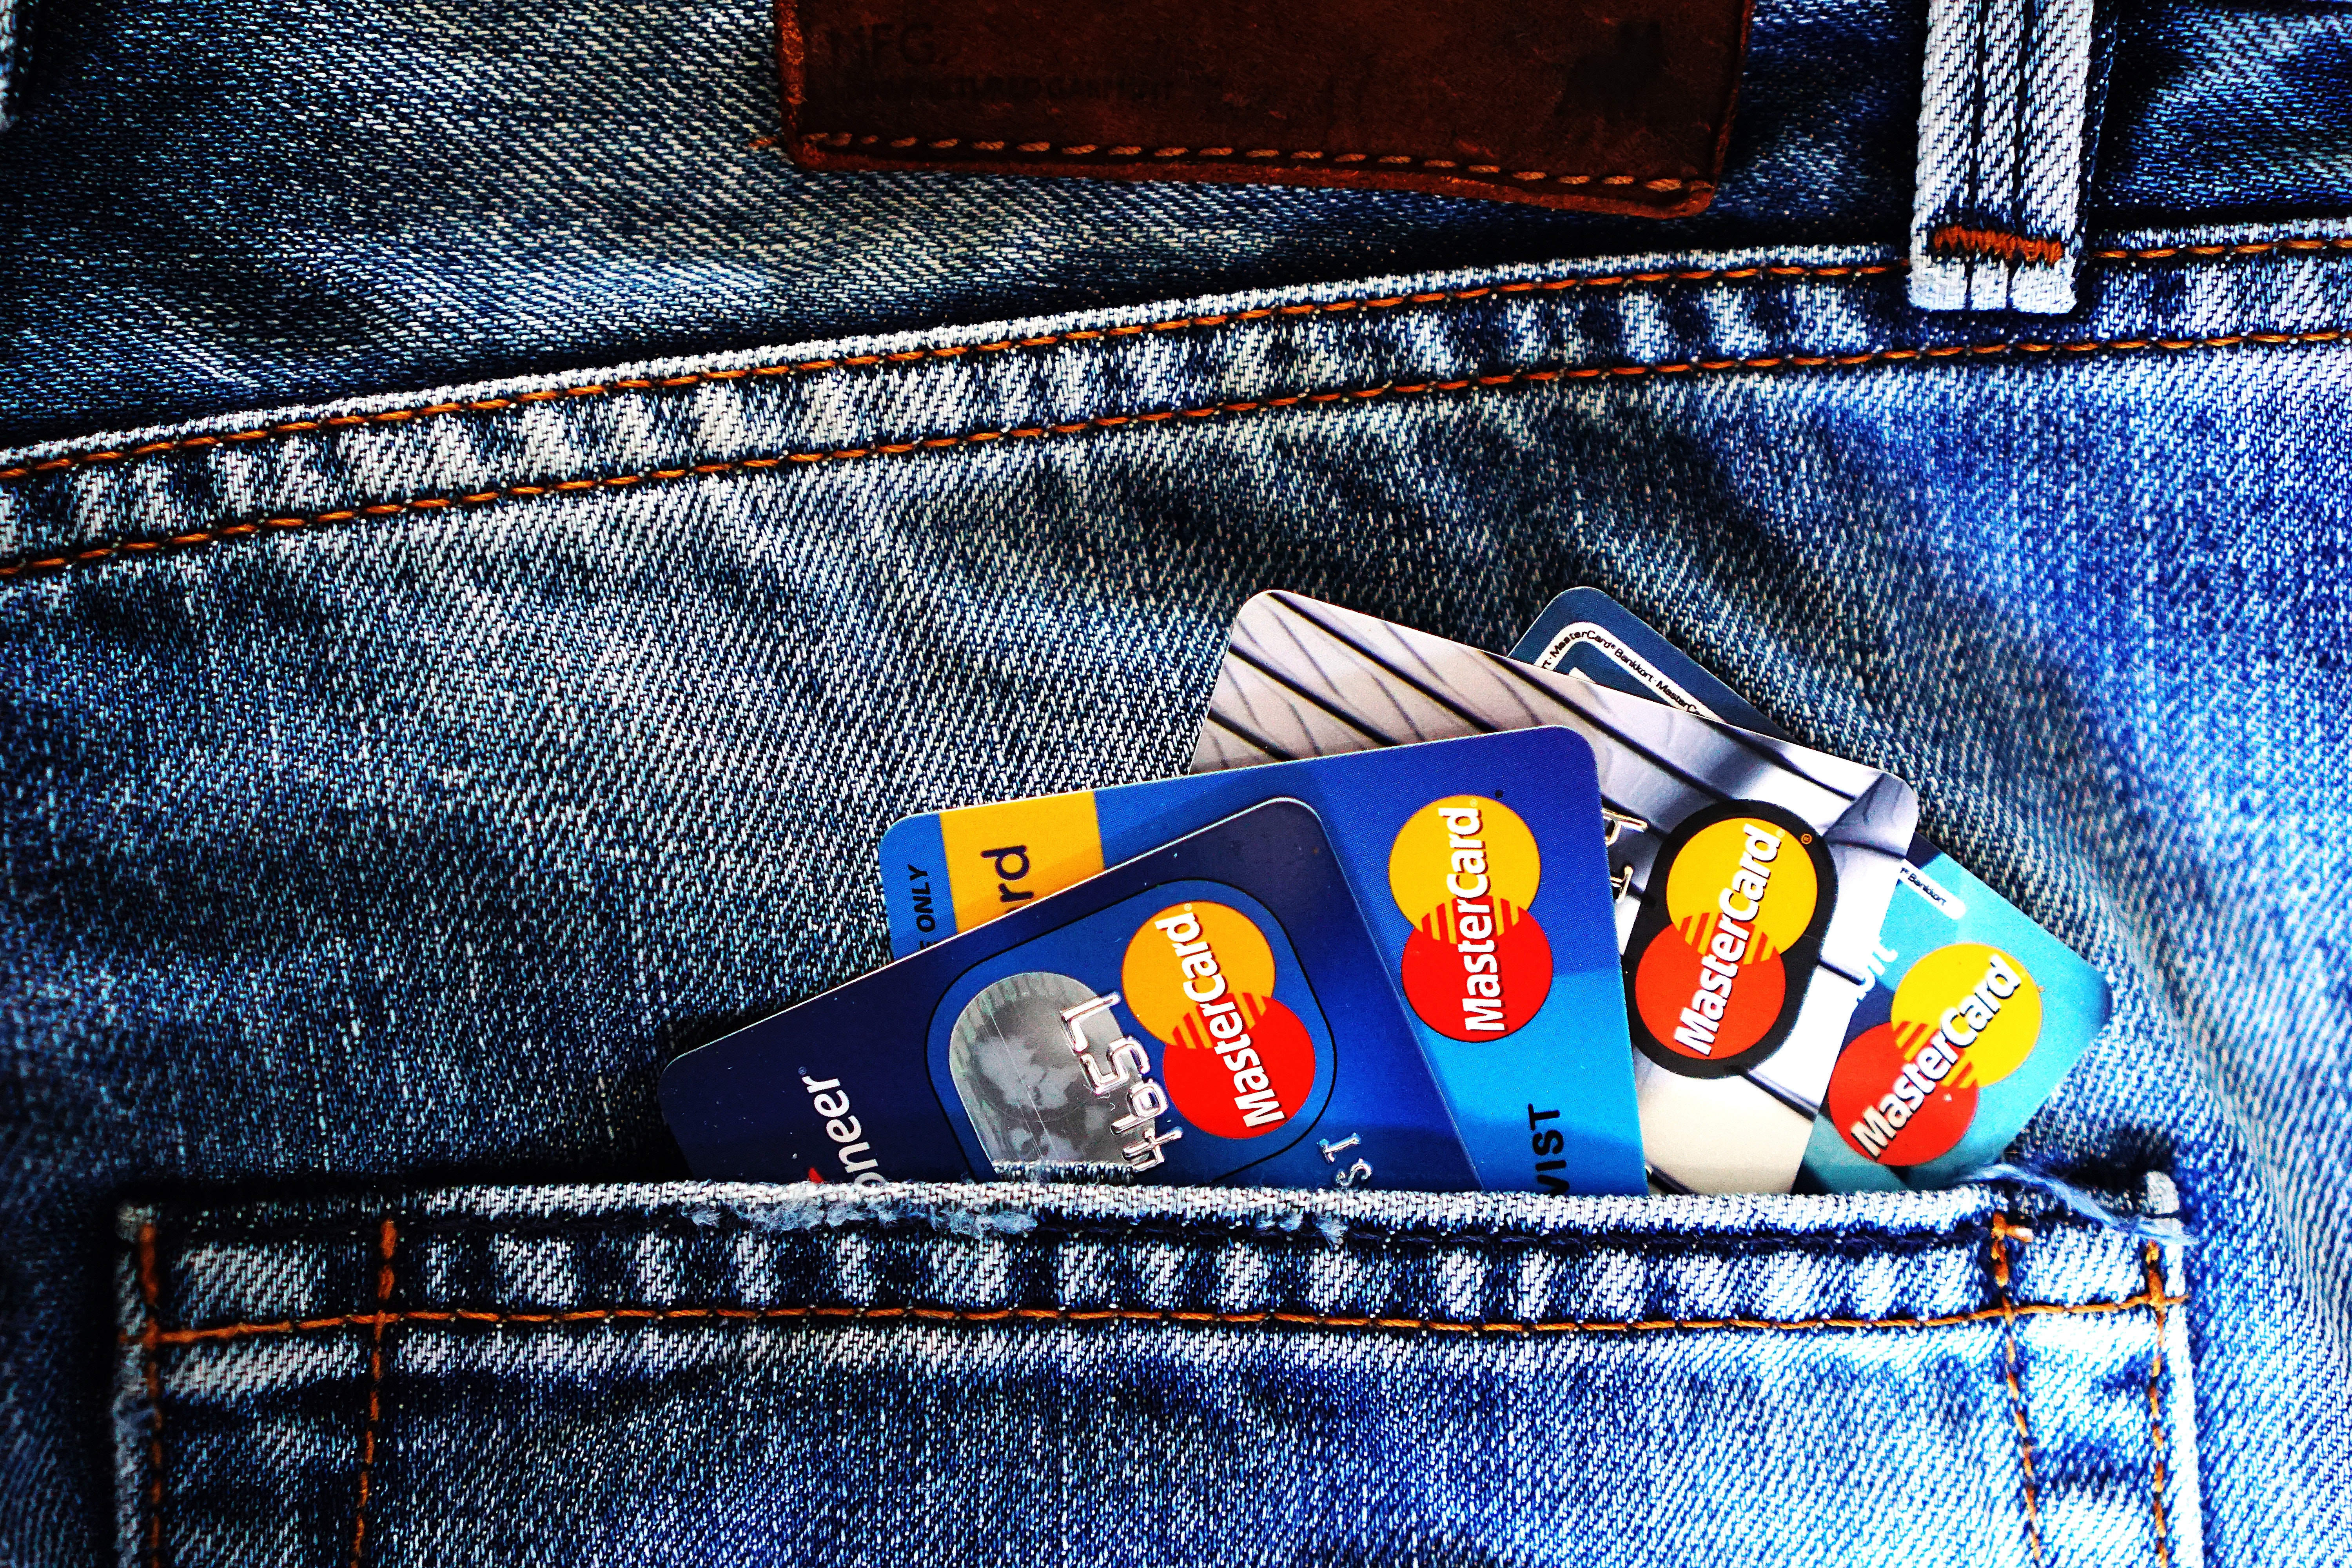 Mastercard and Zoho Expand Access to Tools to Help Small Business Owners Around the World Thrive